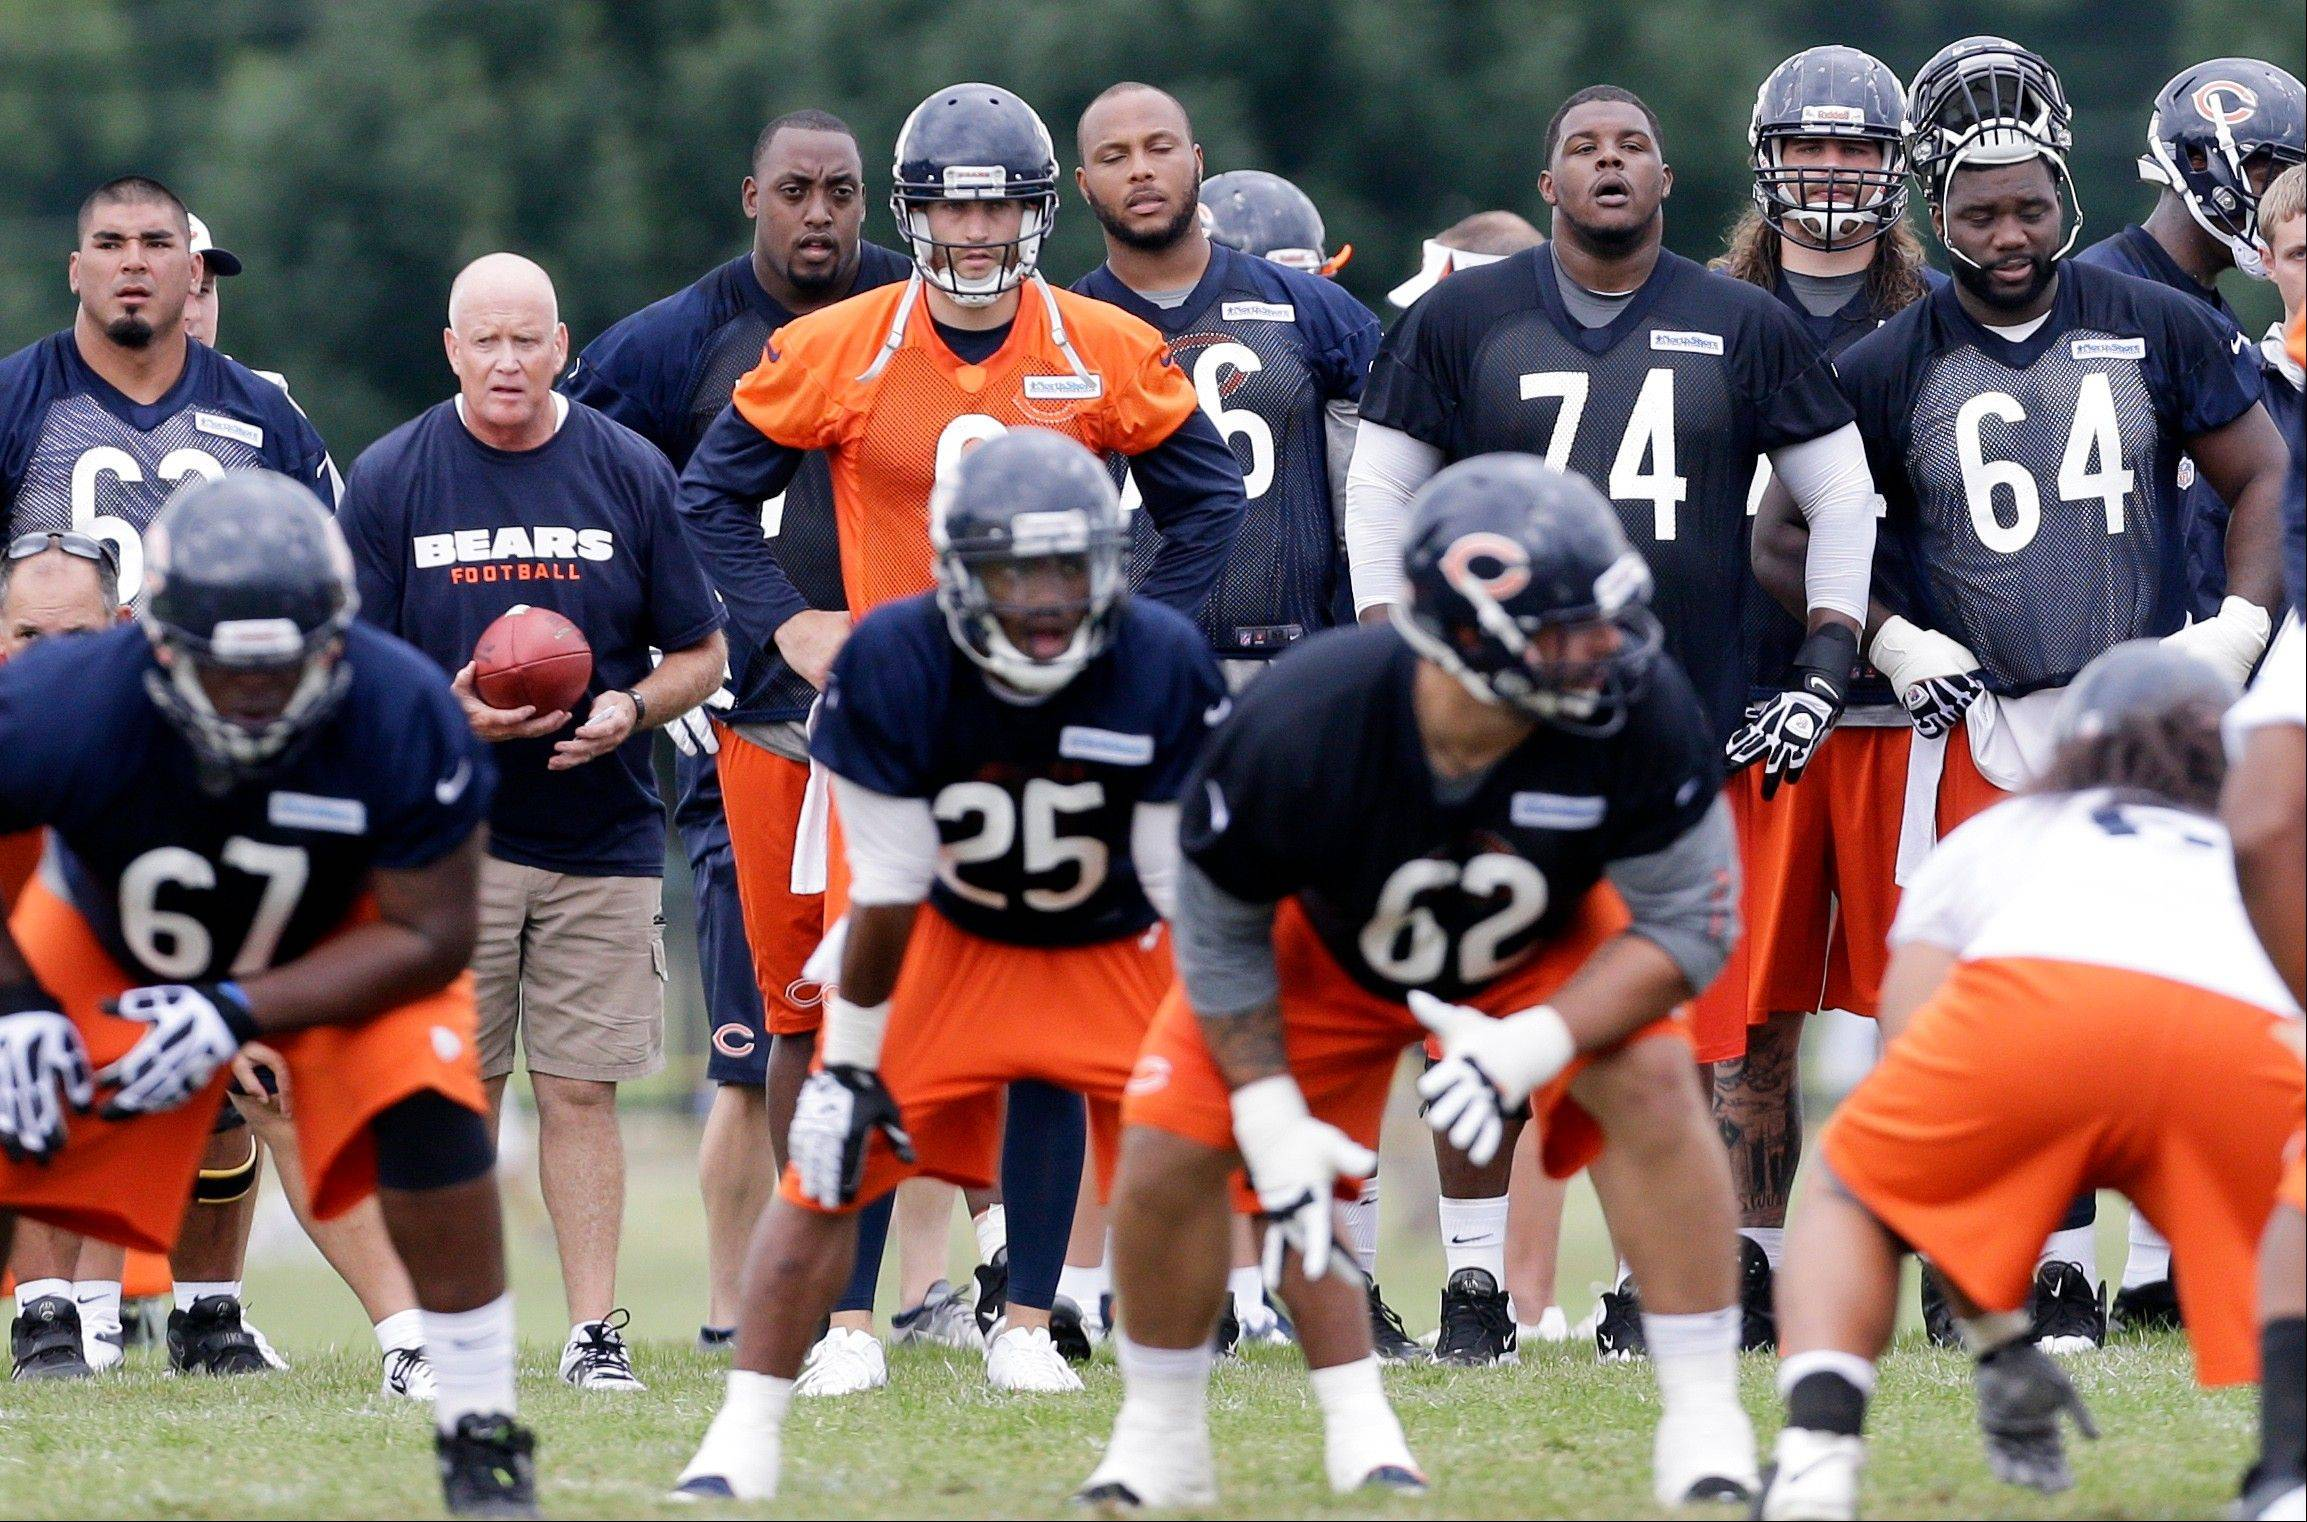 Chicago Bears quarterback Jay Cutler , center rear, watches teammates.